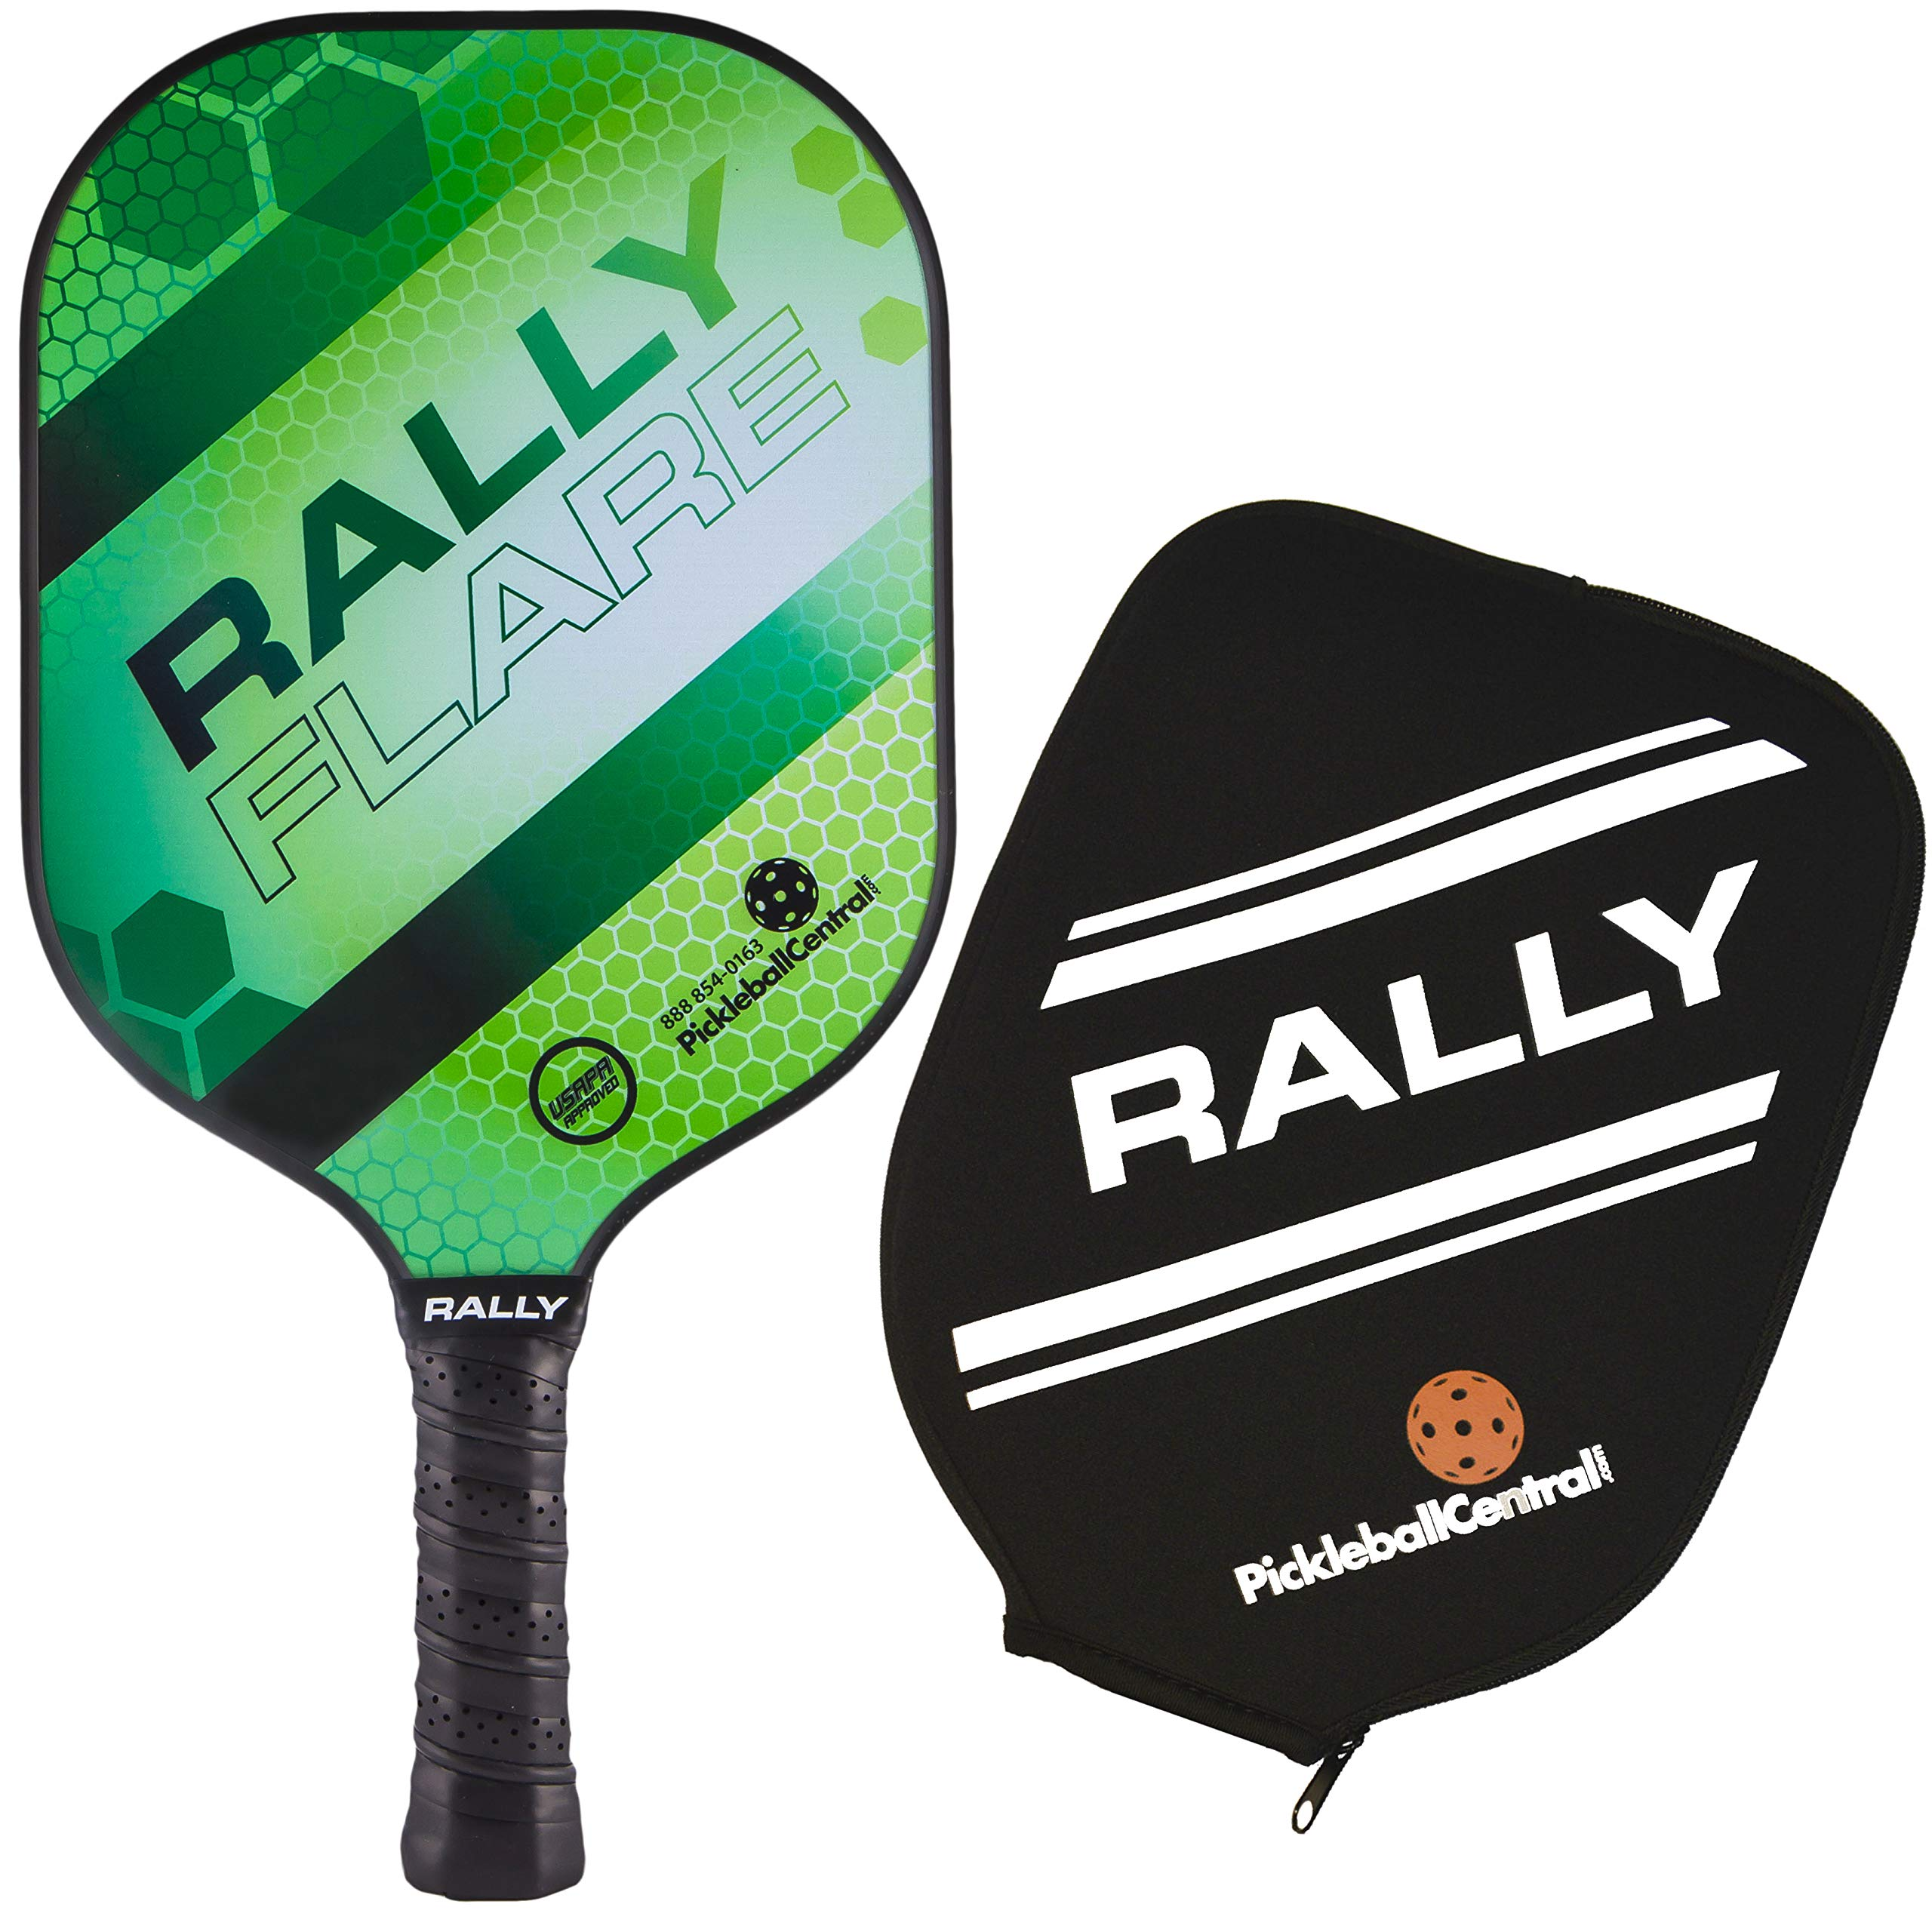 Rally Flare Graphite Pickleball Paddle - Green | Polymer Honeycomb Core, Graphite Face | Lightweight Control, Power, Spin | Paddle Cover Included in Bundle | USAPA Approved by PickleballCentral